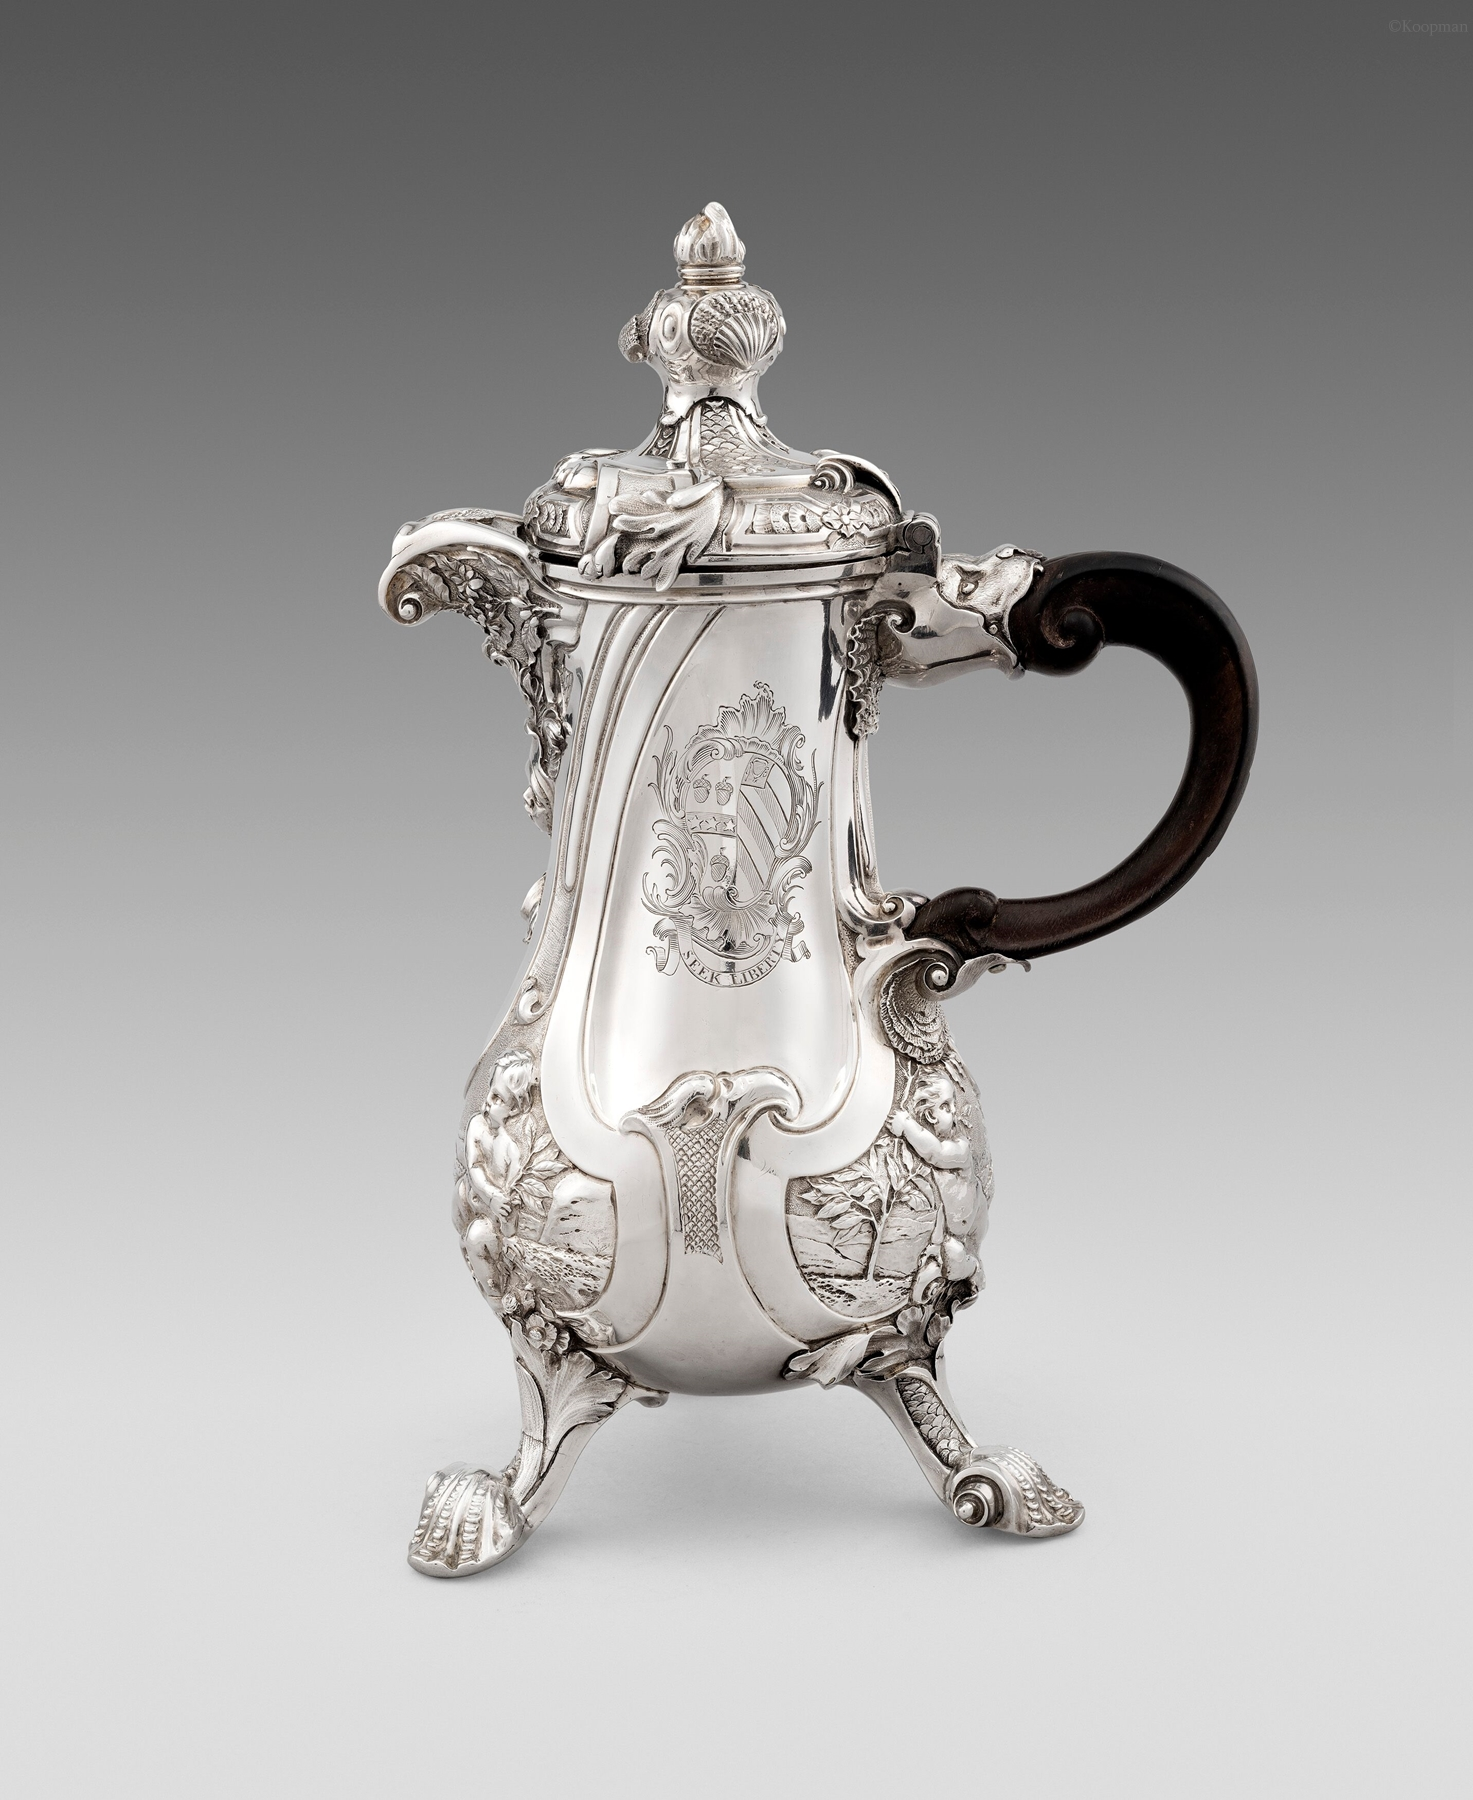 The Lequesne Coffee Pot